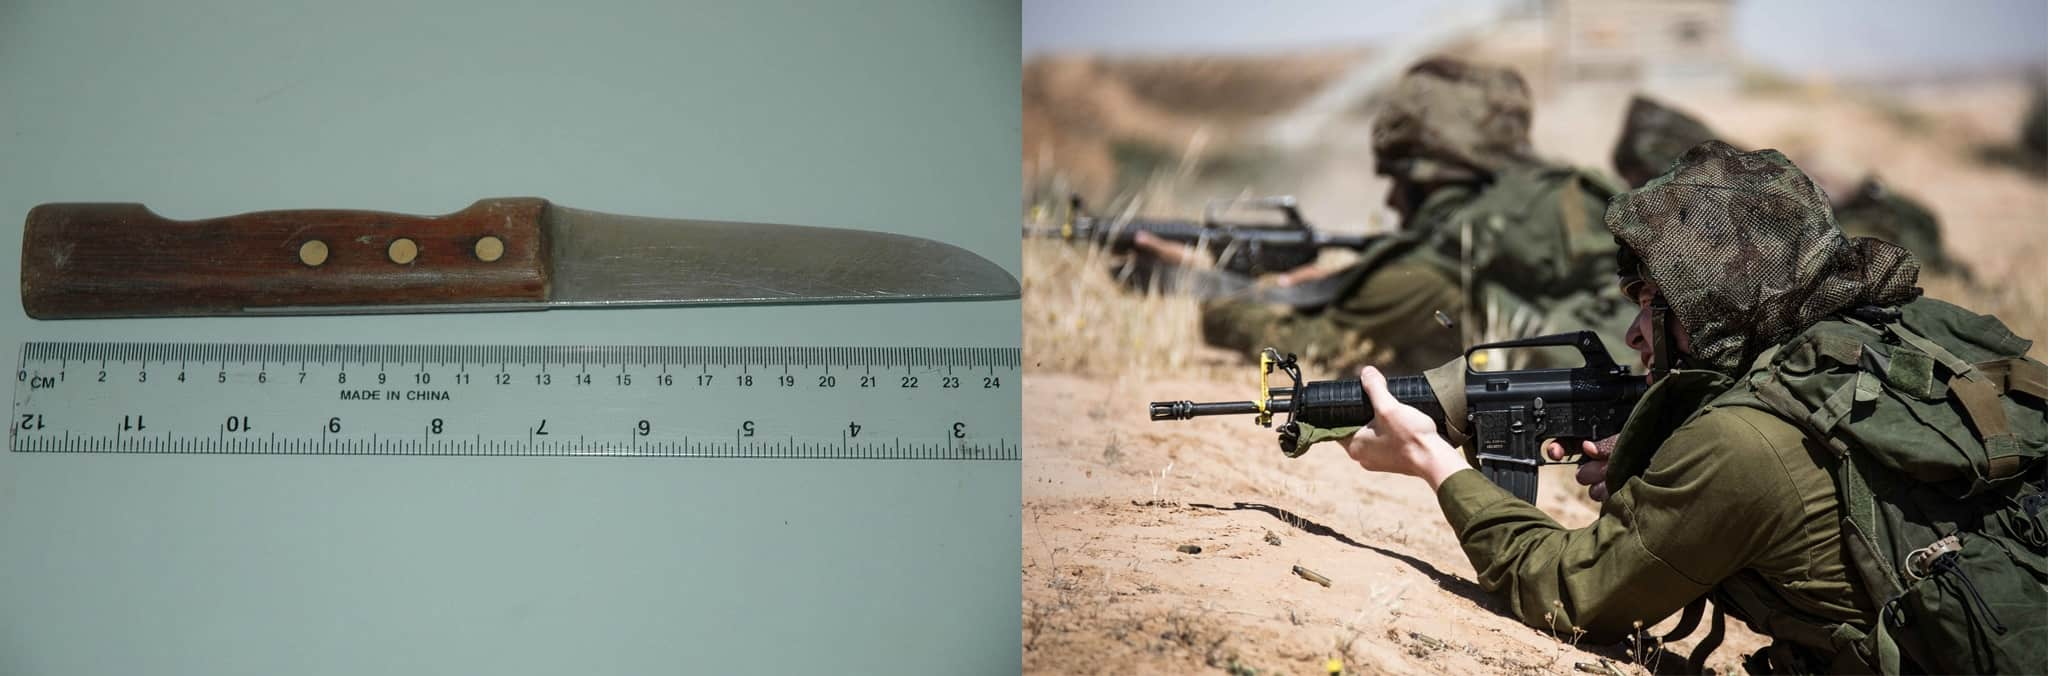 A knife used by a Palestian youth VS Israeli soldiers training for action on the Gaza border.  (Photos: Israel Defense Forces @ flickr/cc)